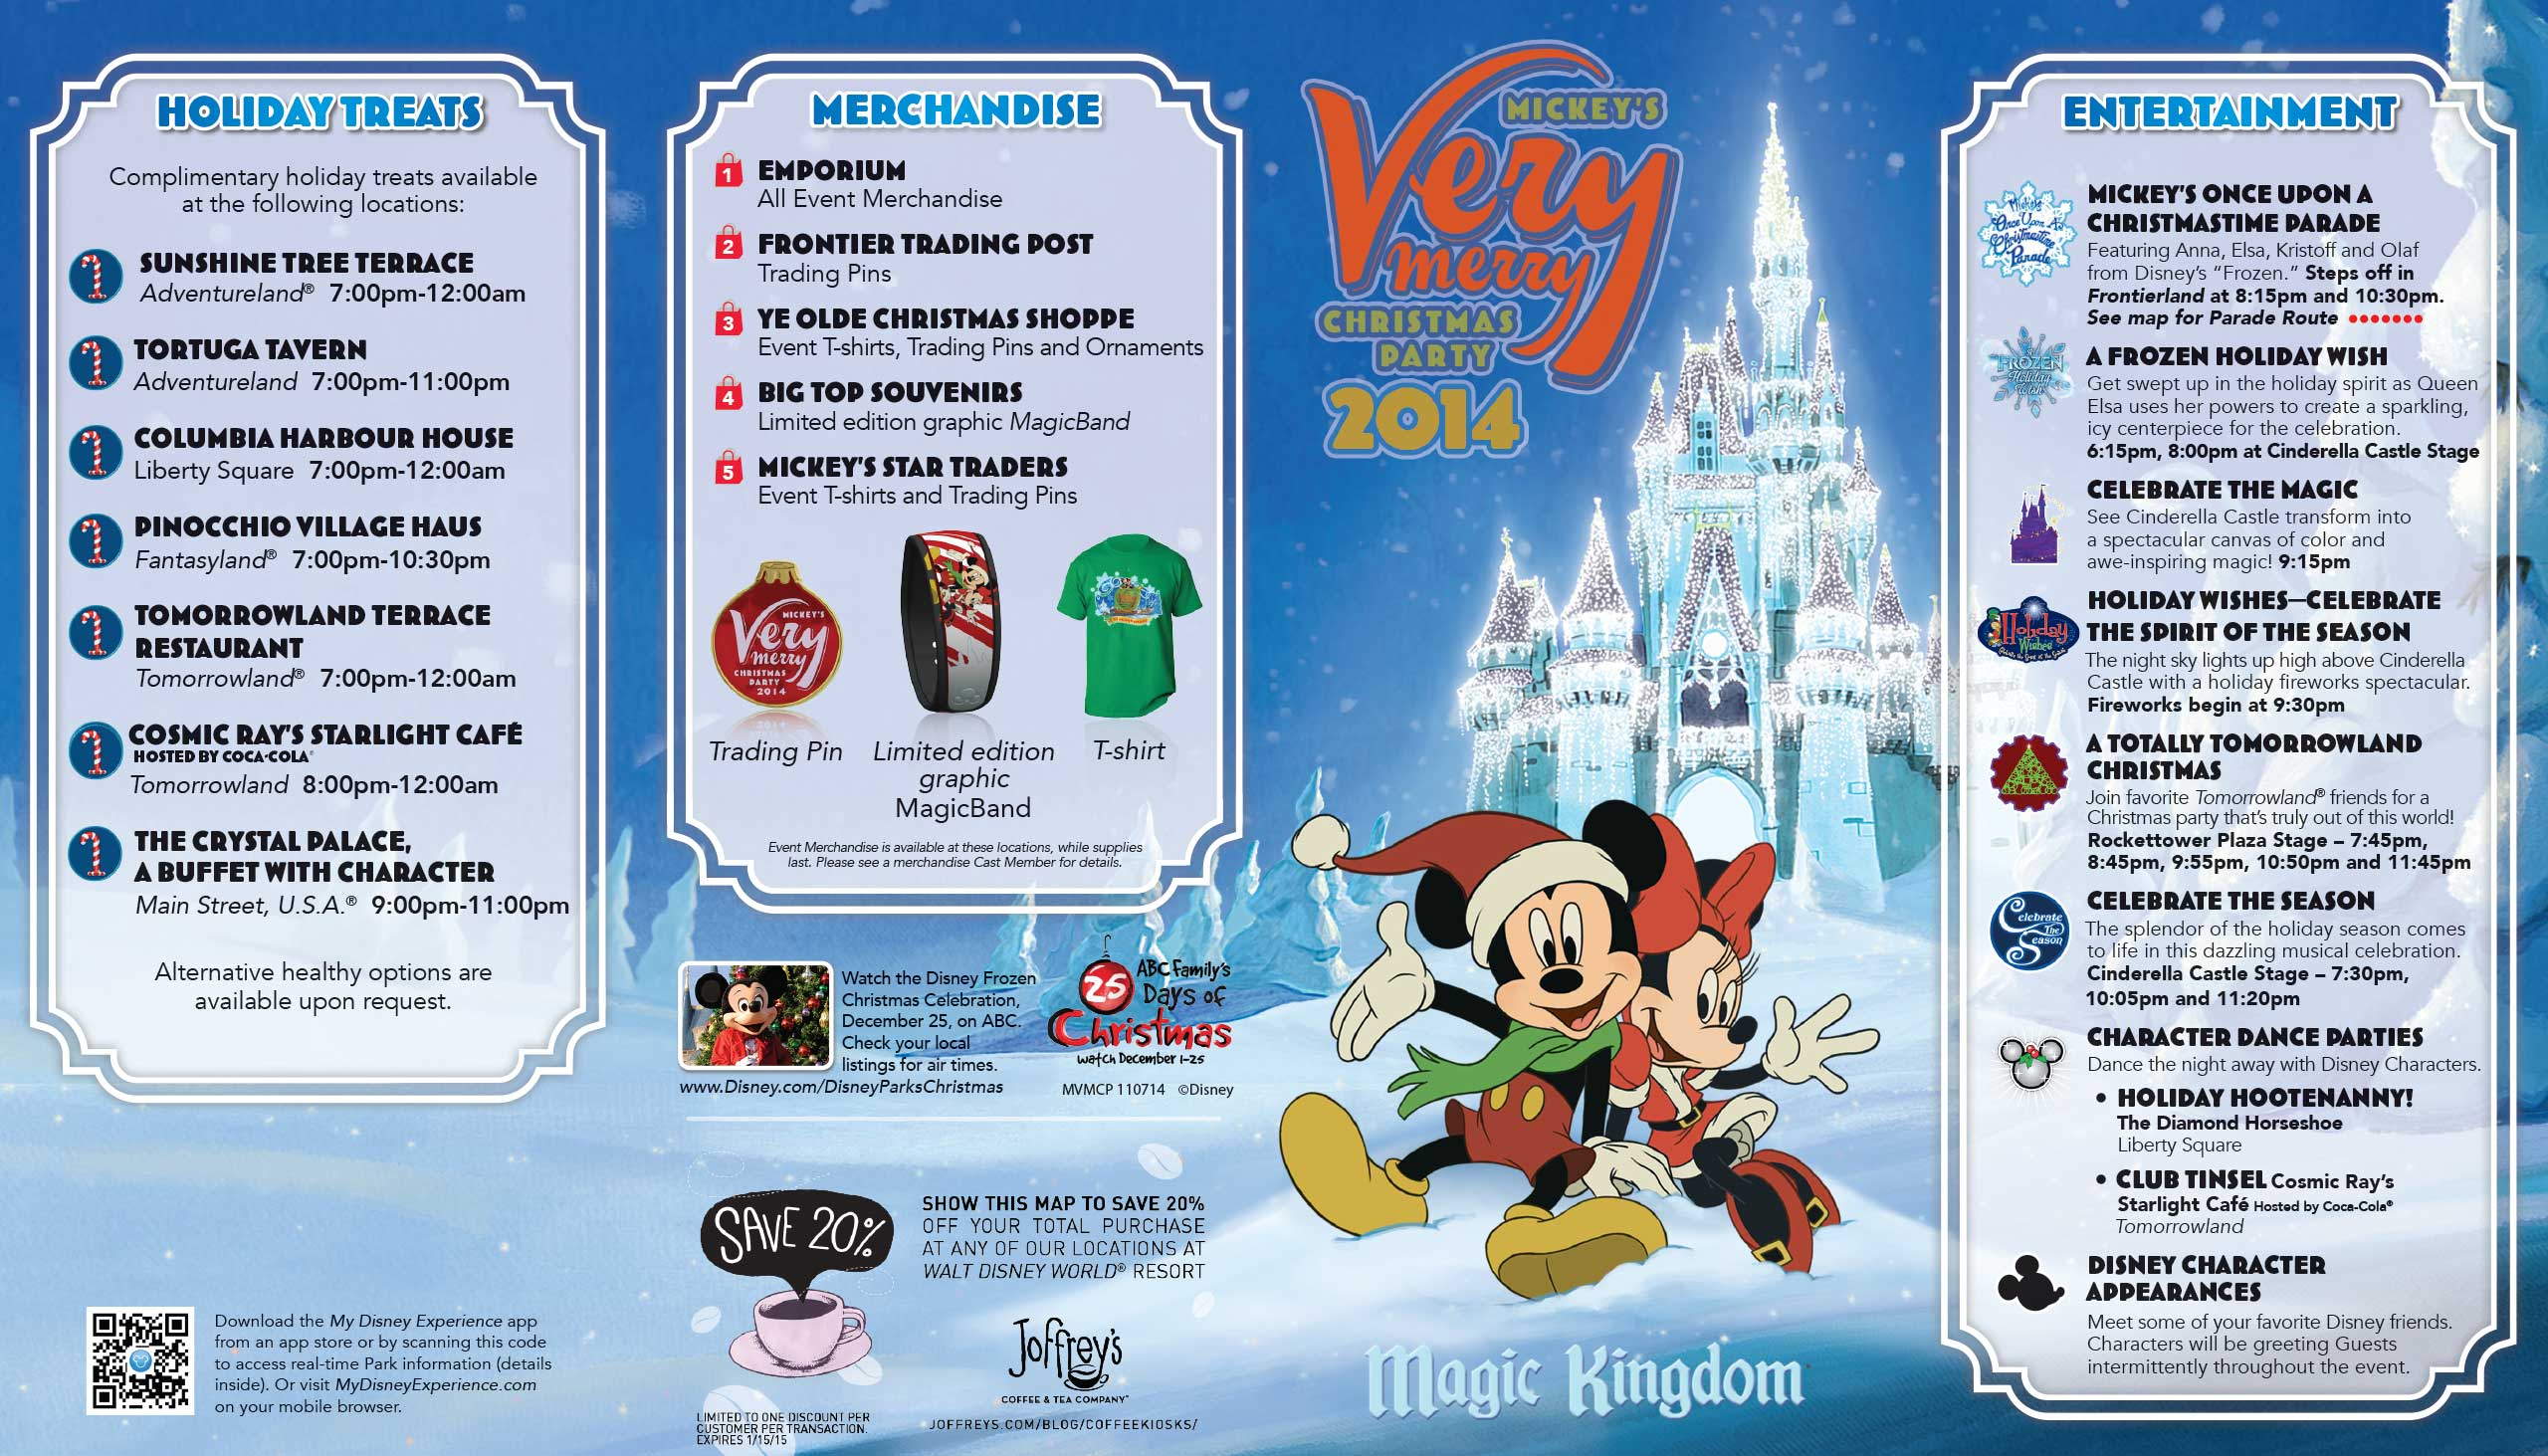 Mickeys Very Merry Christmas Party Merchandise.Mickey S Very Merry Christmas Party 2014 Guide Map Photo 1